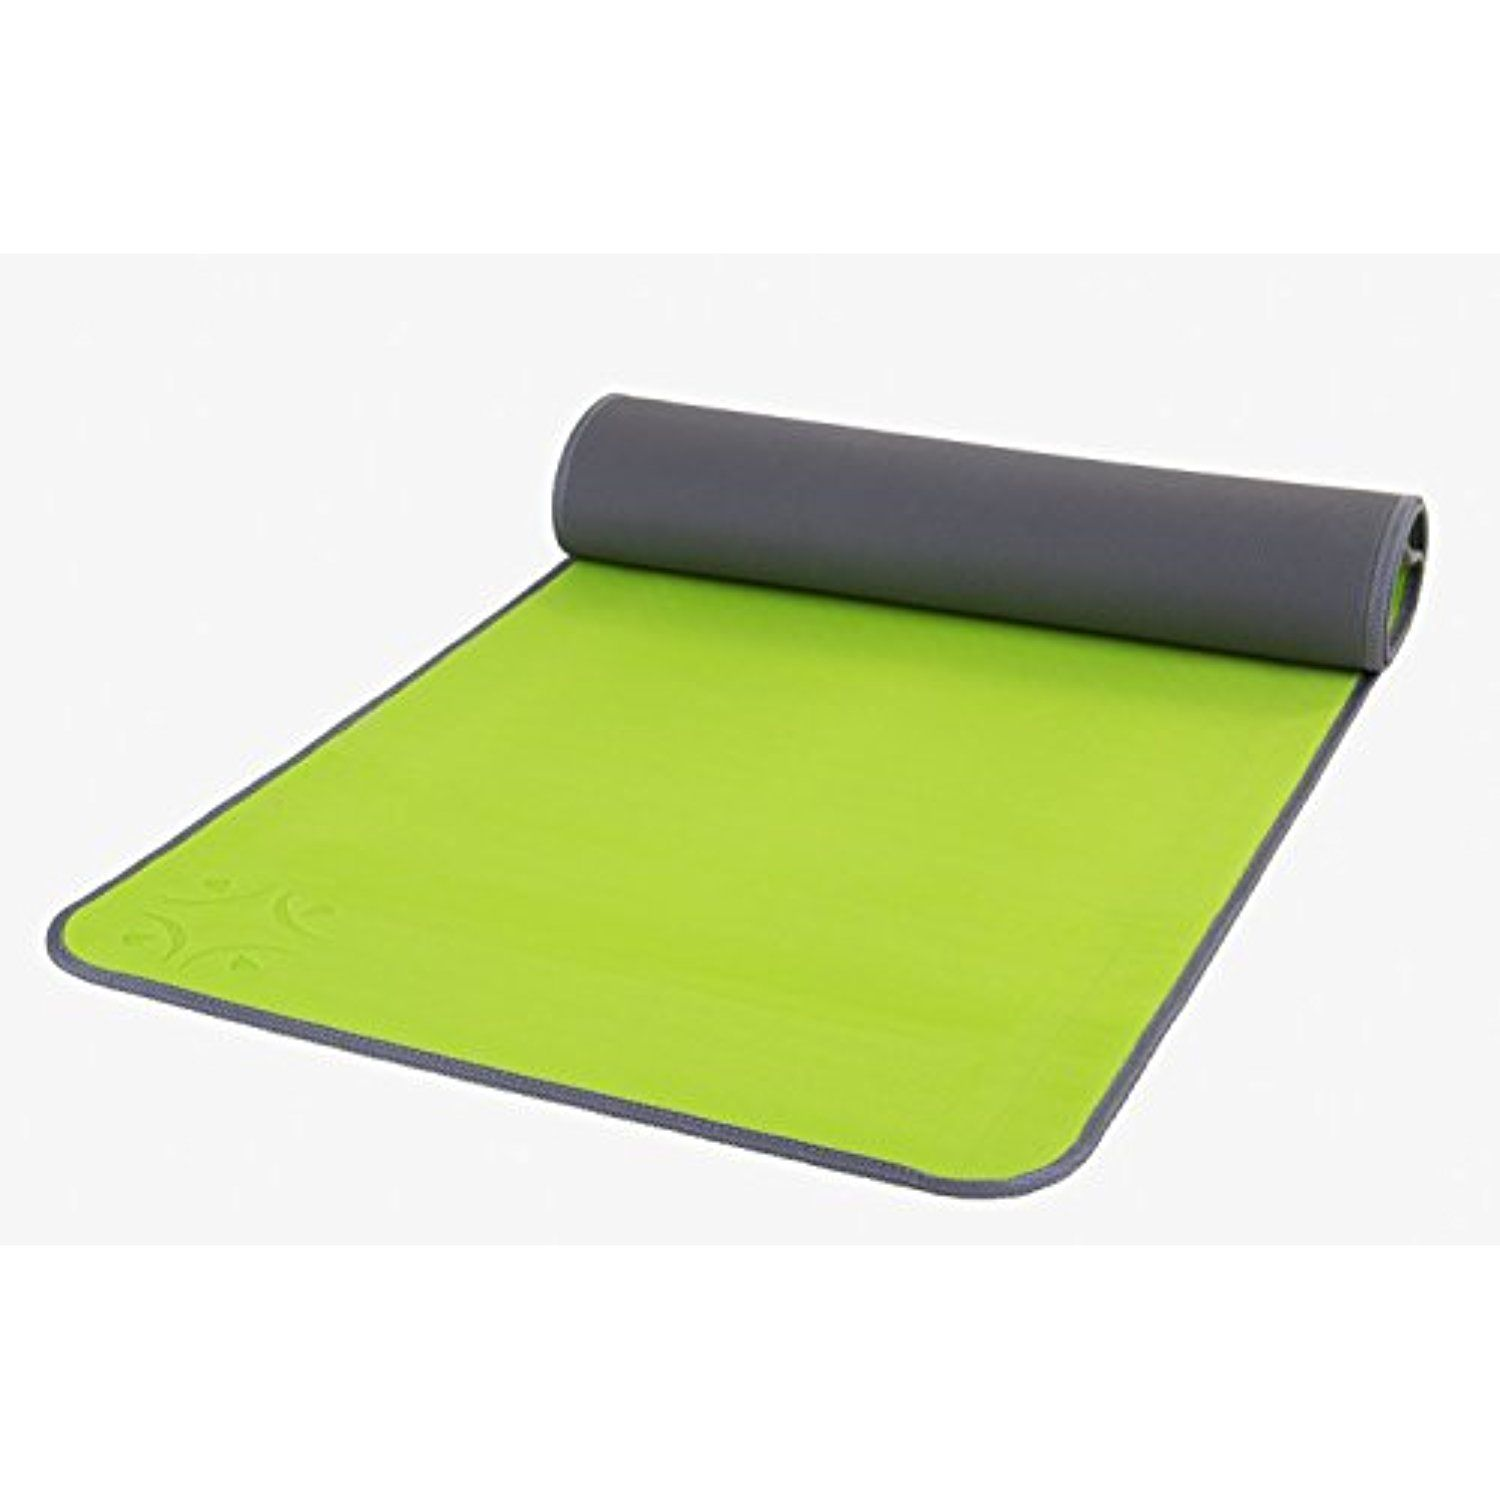 s out new workout pilates impact great for work beginner fitness blender low post youtube mothers pregnancy watch mat mats